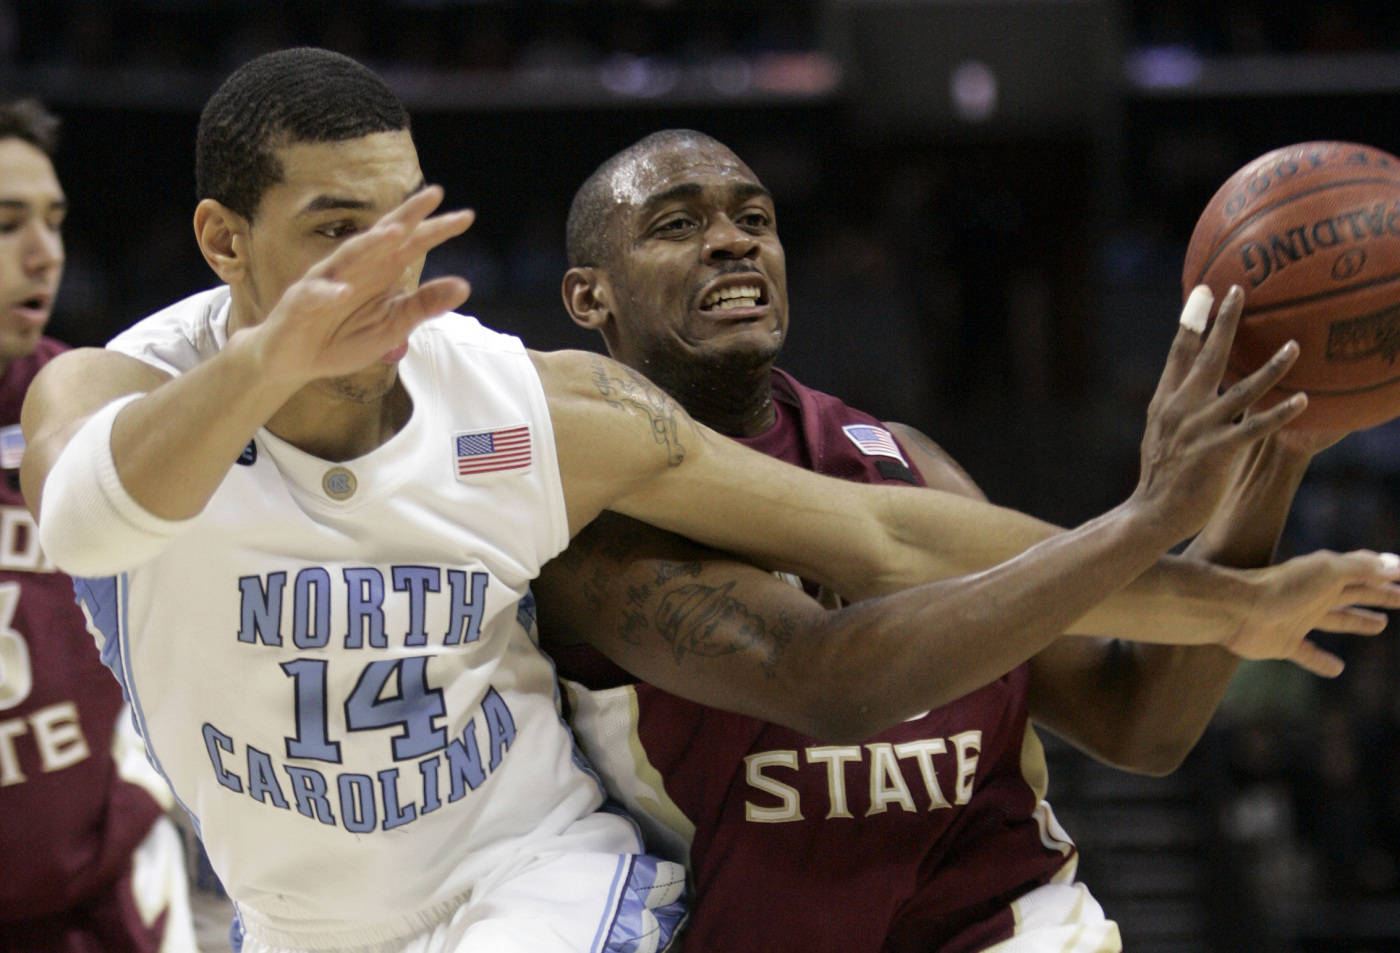 North Carolina's Danny Green collides with Ralph Mims in the first half. (AP Photo/Steve Helber)